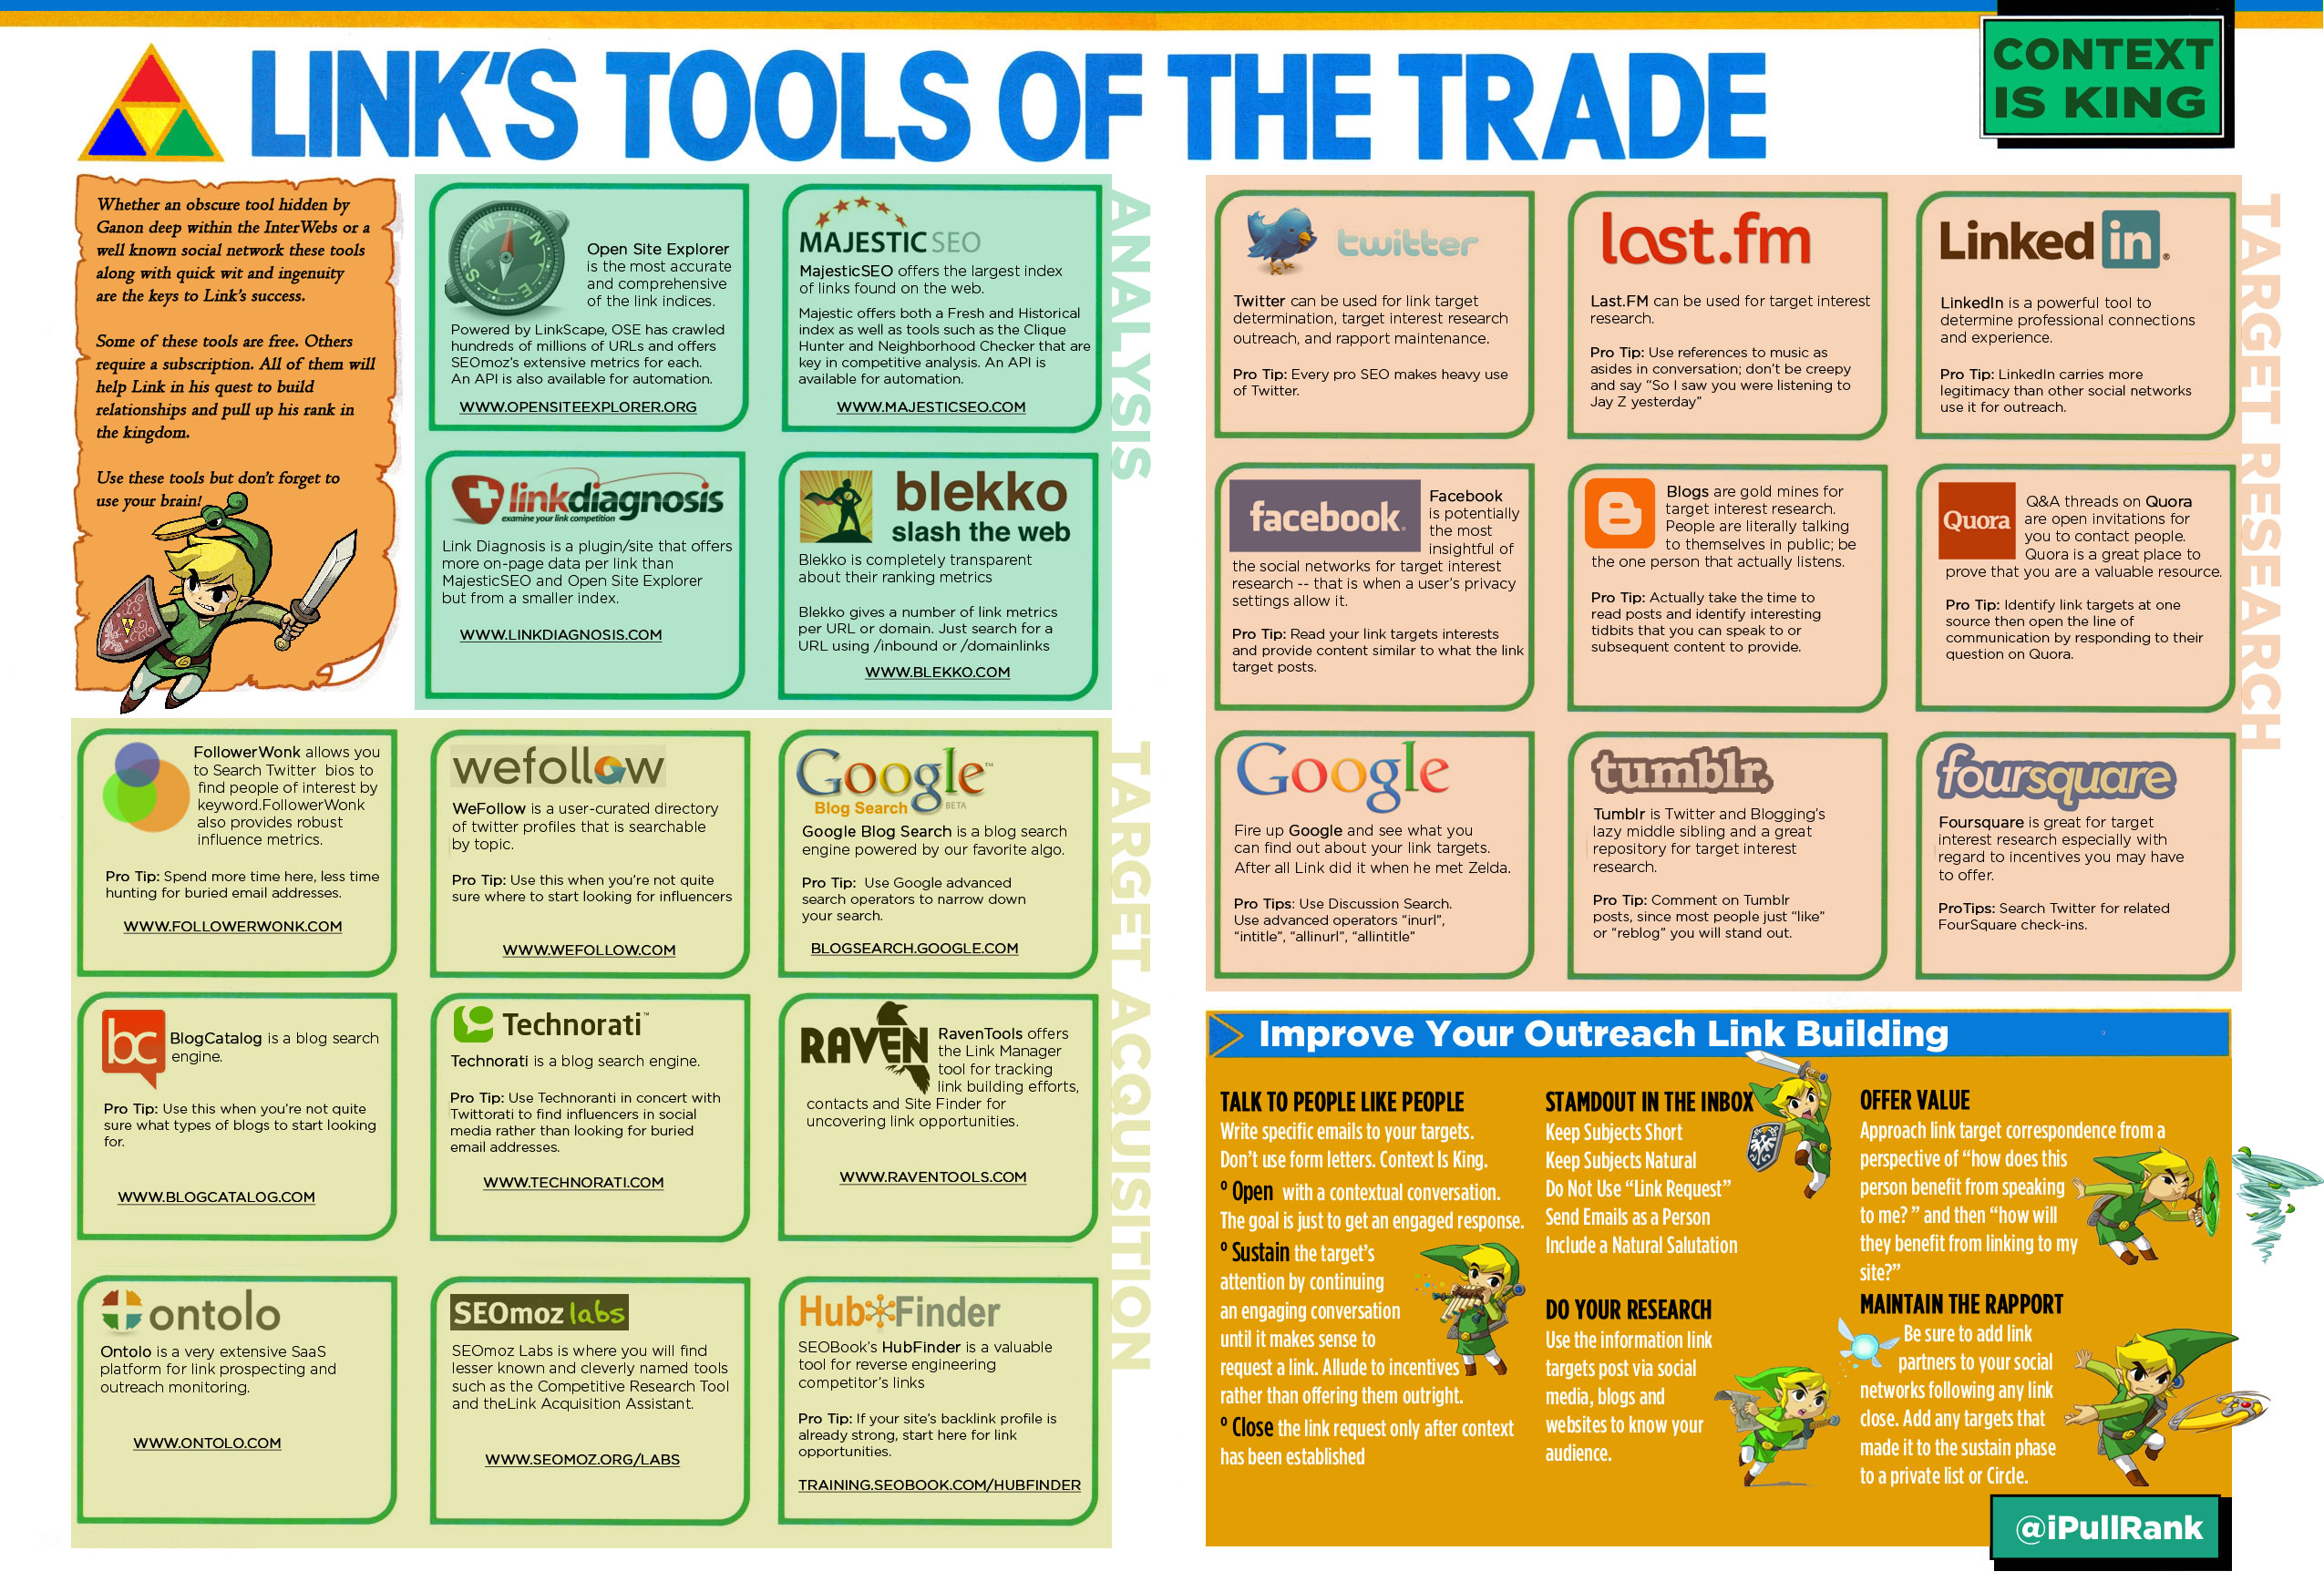 links-tools-of-the-trade